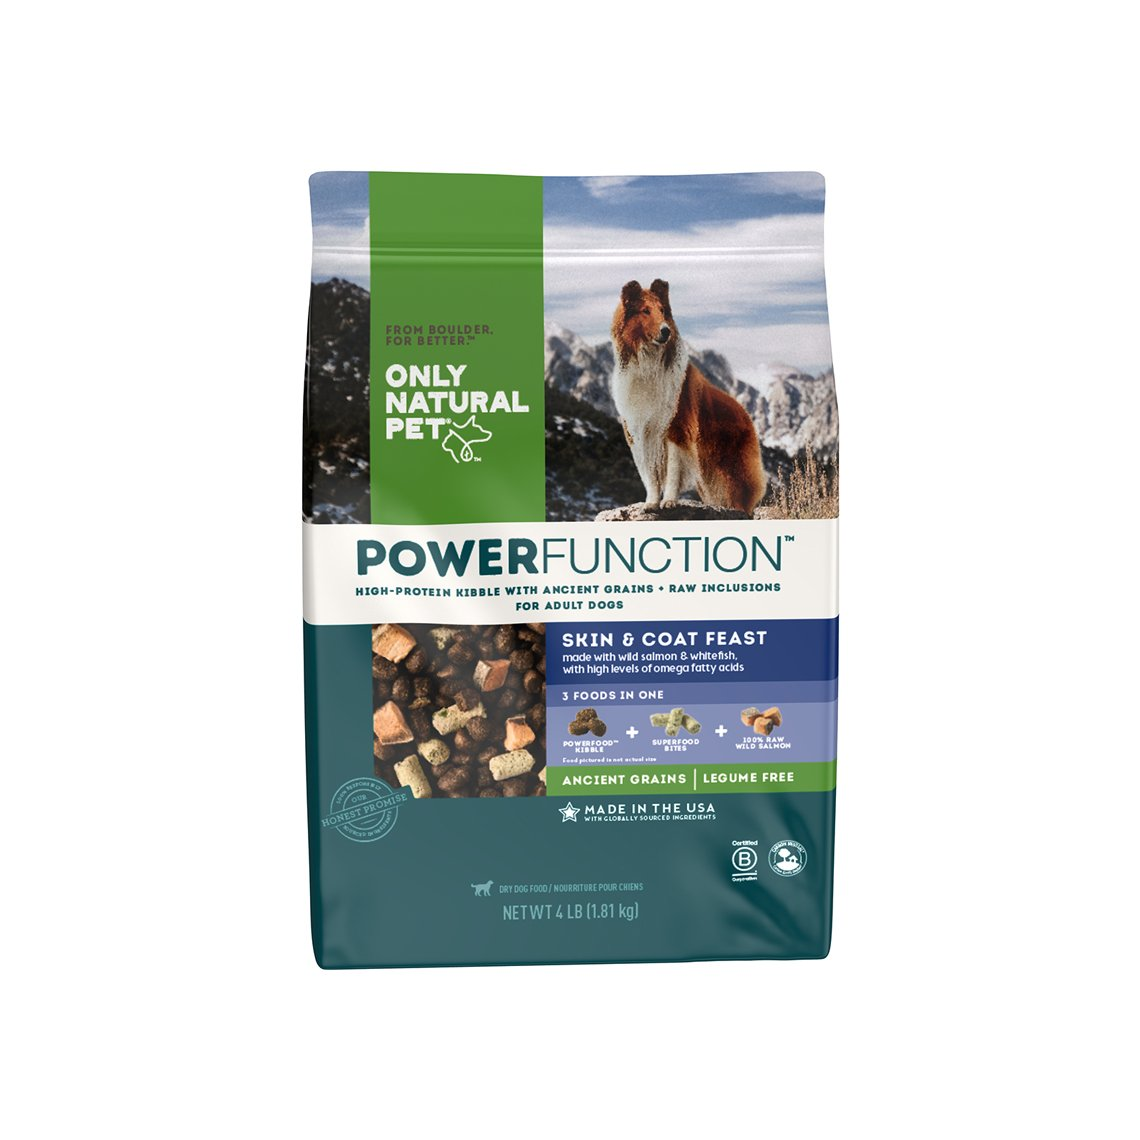 Only Natural Pet PowerFunction Skin & Coat Feast Dog Food